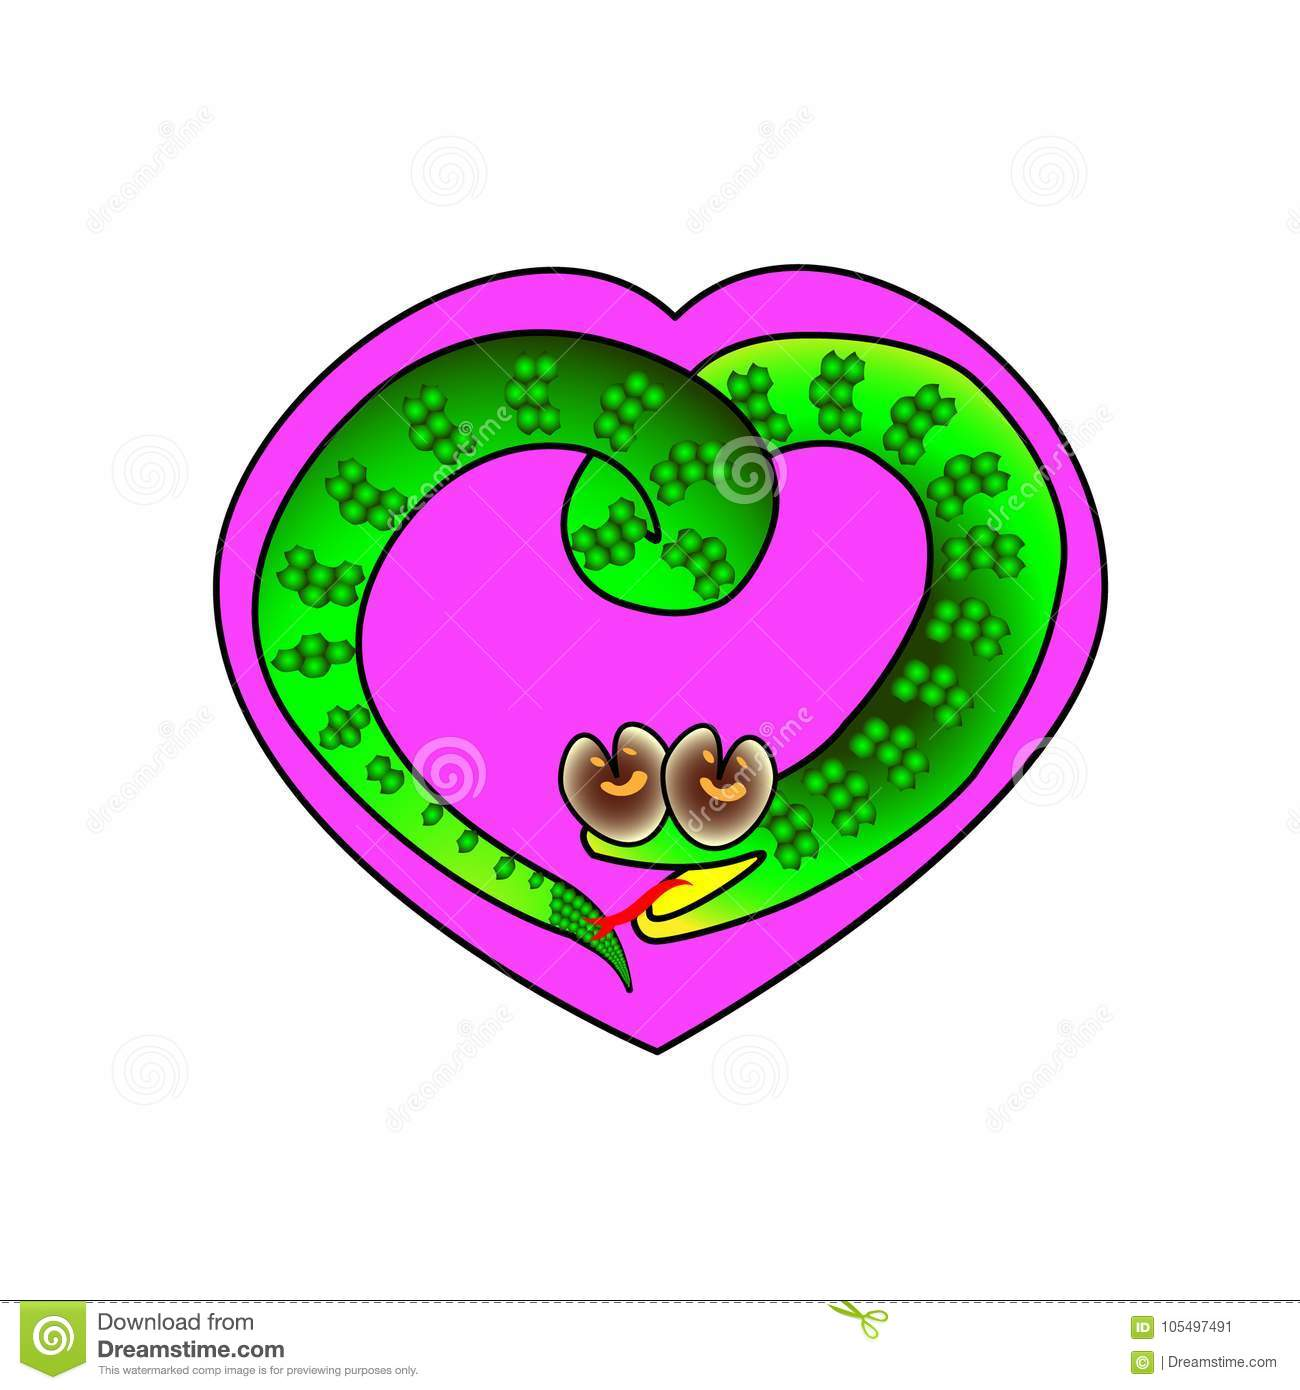 Heart Frame With A Symbol Of A Snake Surrounded Illustration Stock